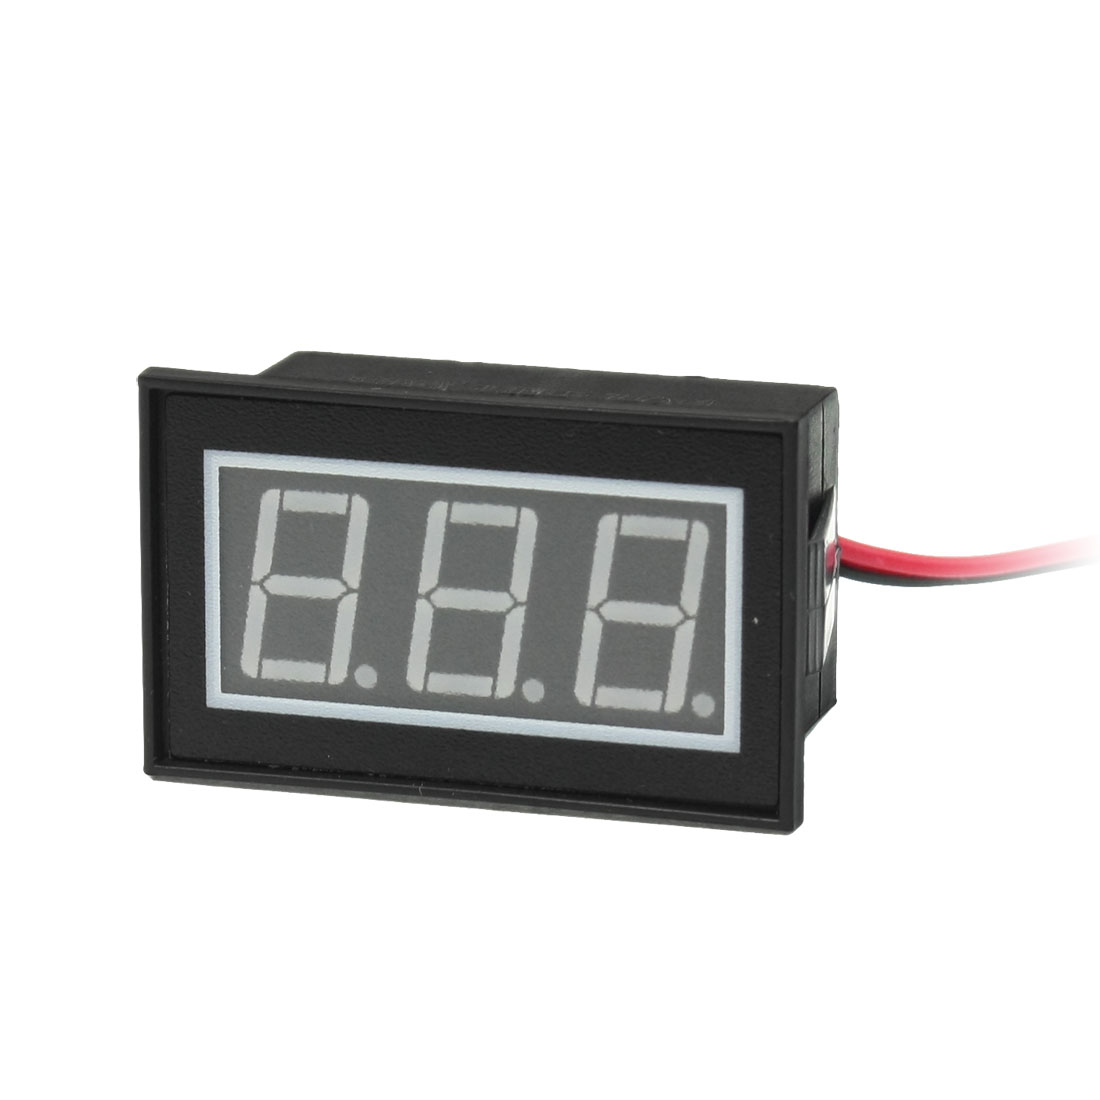 DC 2.5-30V 2-Wire Waterproof 3-Digit Display Red LED Volt Panel Meter Voltmeter